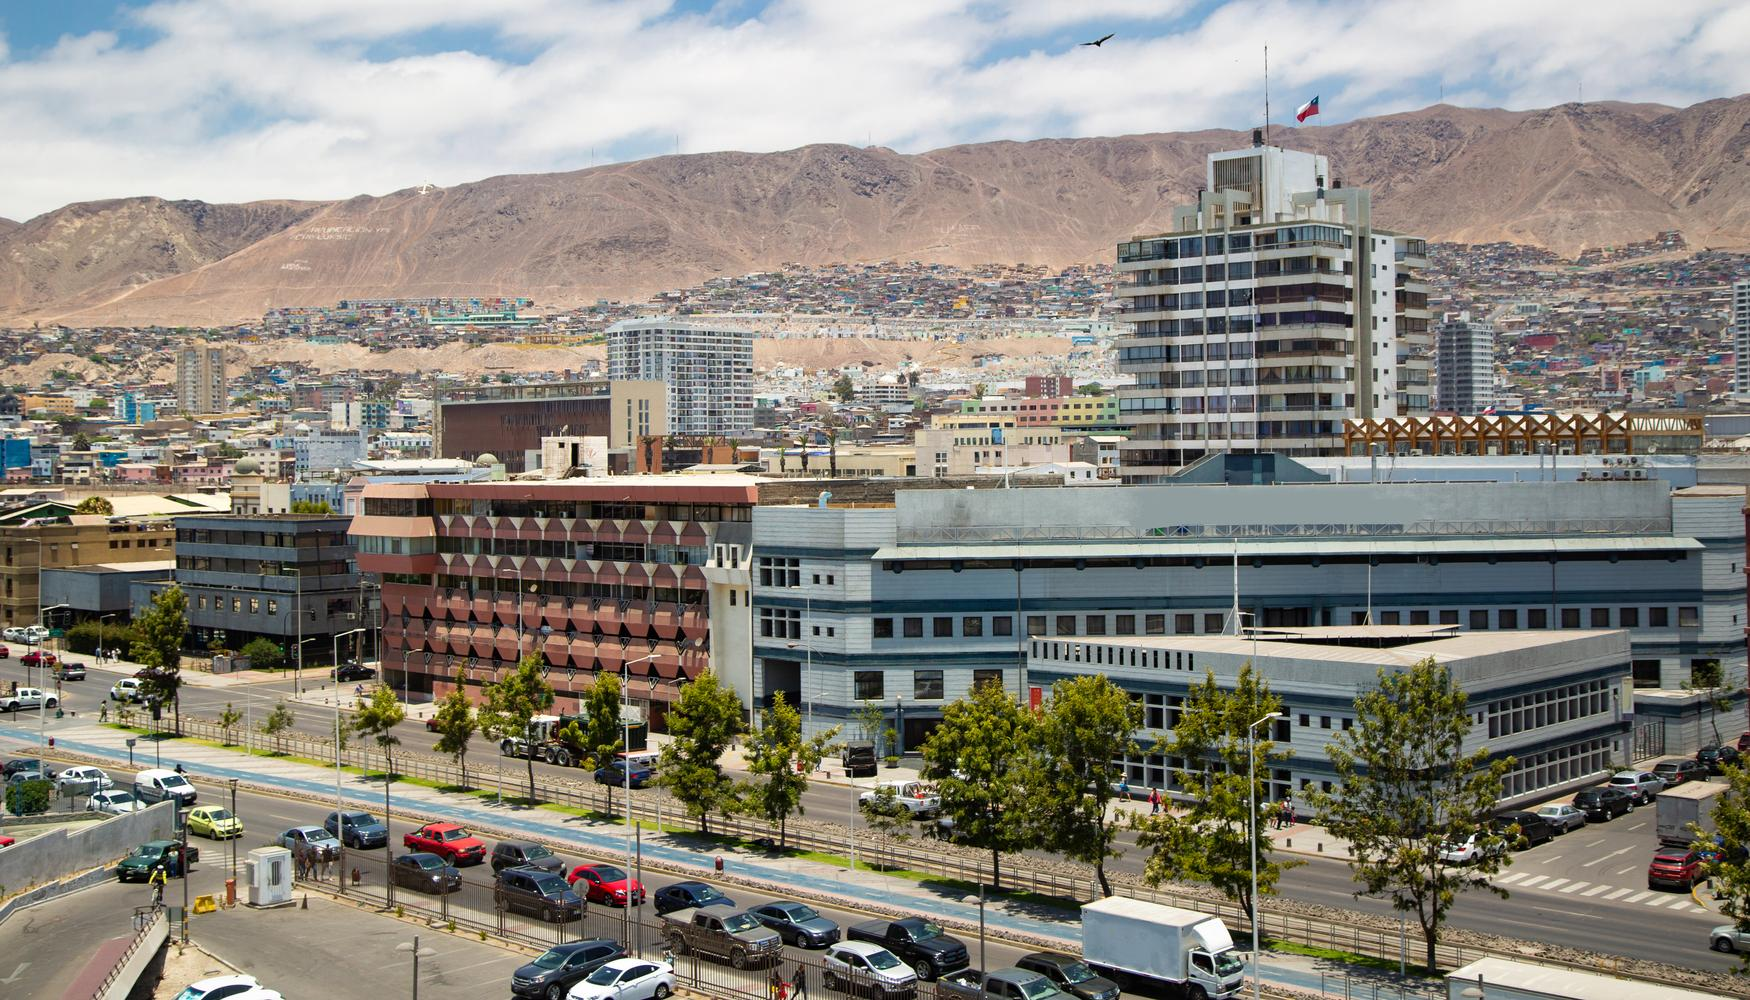 Car rental at Antofagasta Cerro Moreno Airport